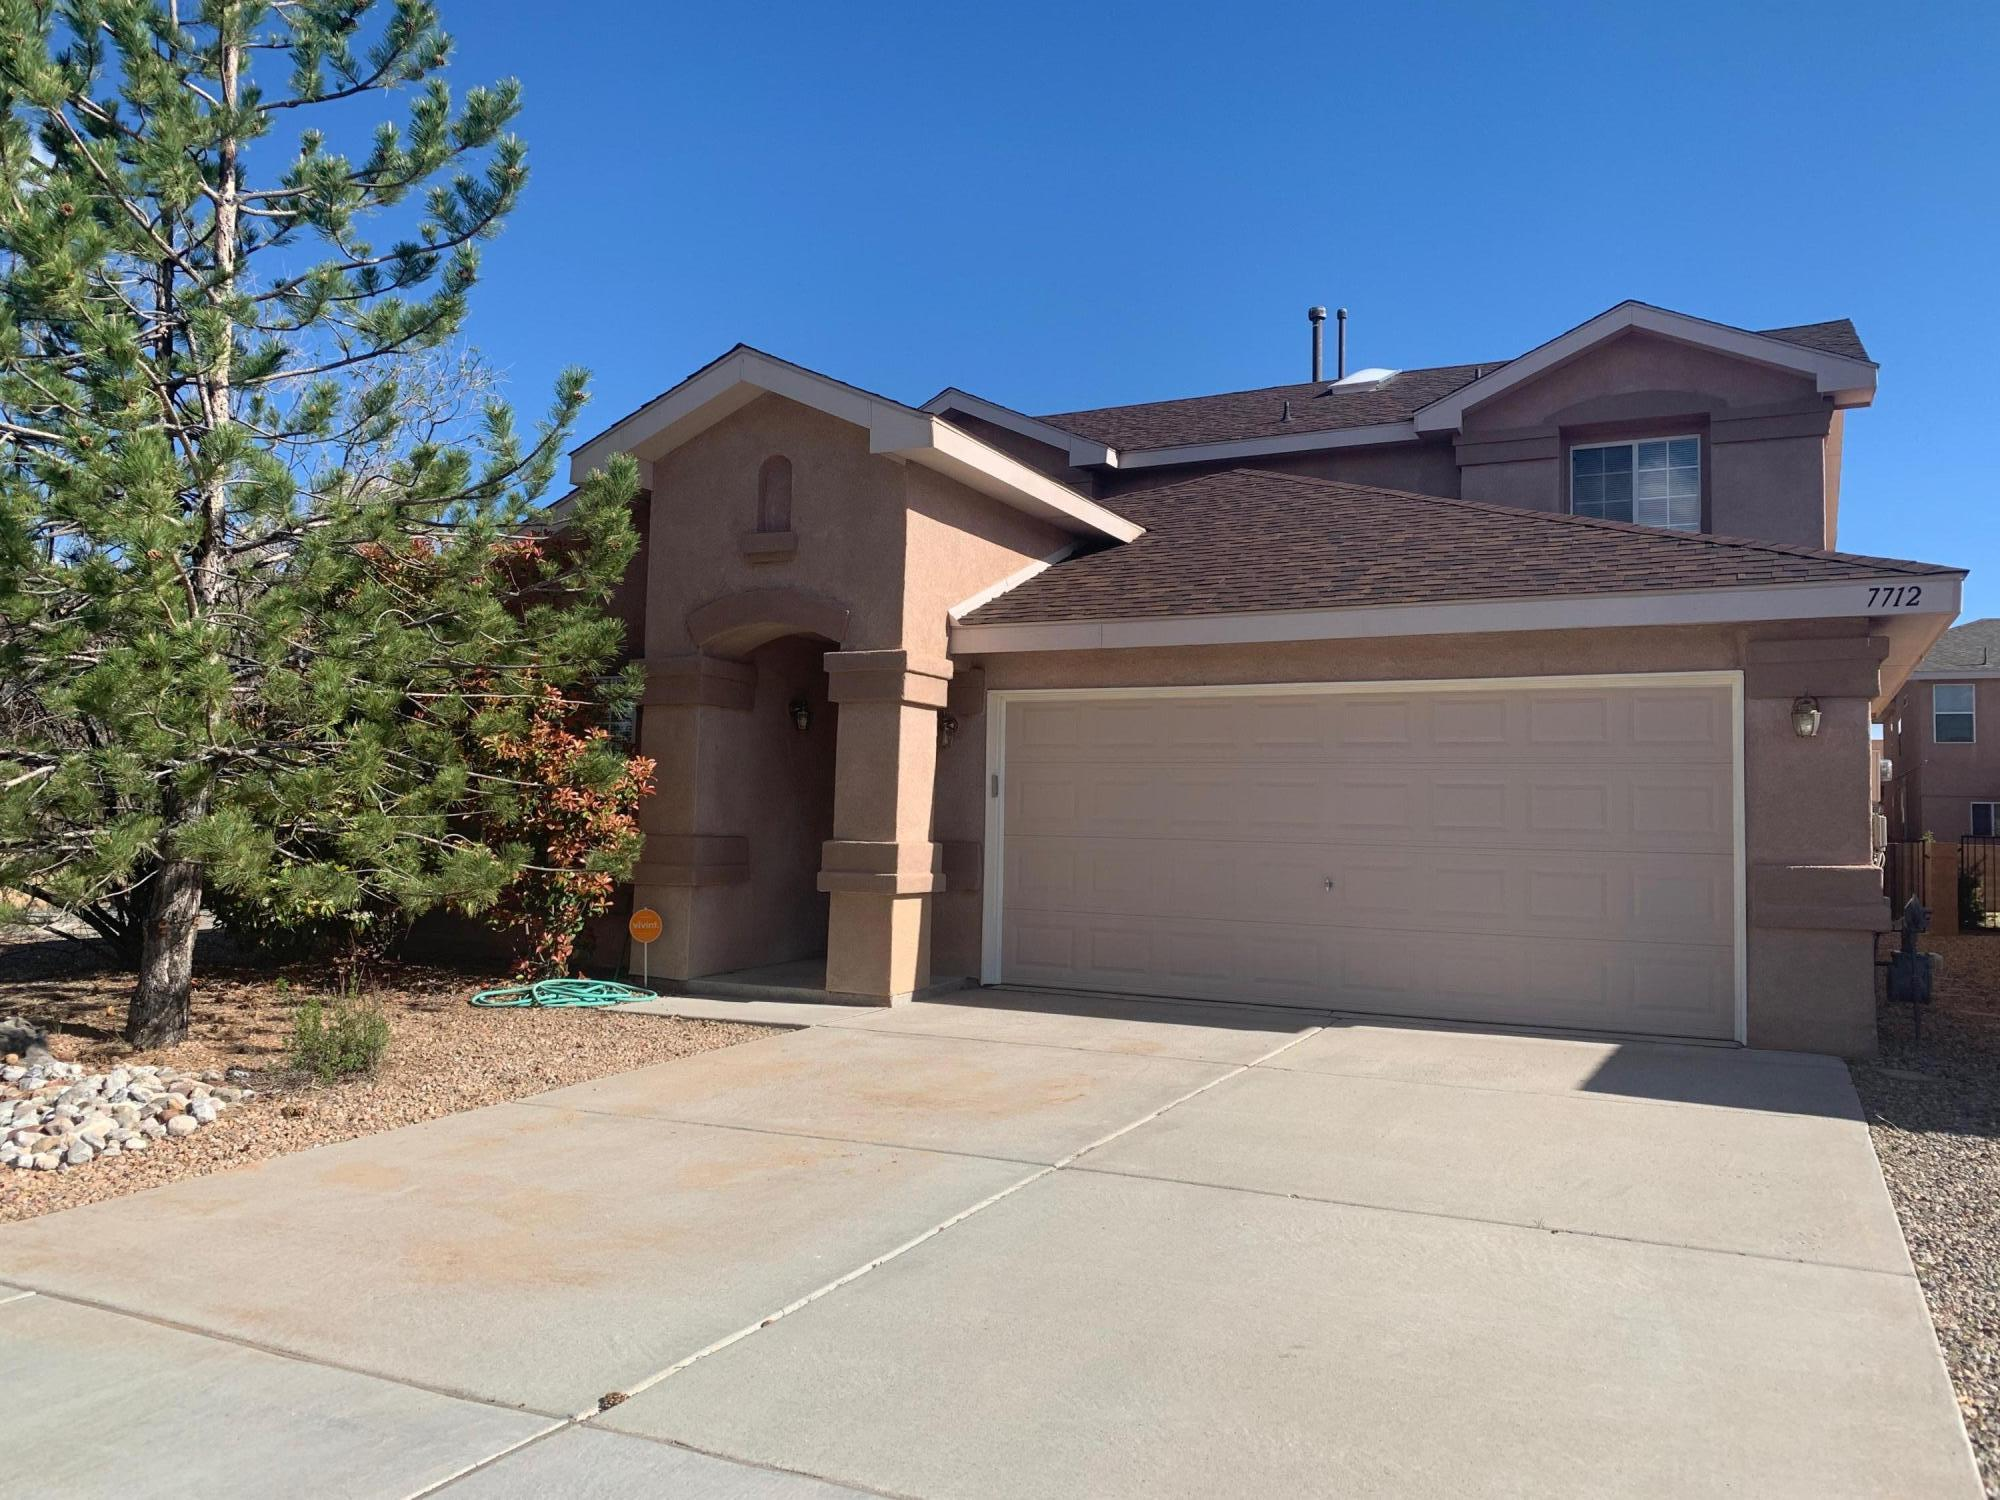 7712 NW Woodstar Avenue, Northwest Albuquerque and Northwest Heights, New Mexico